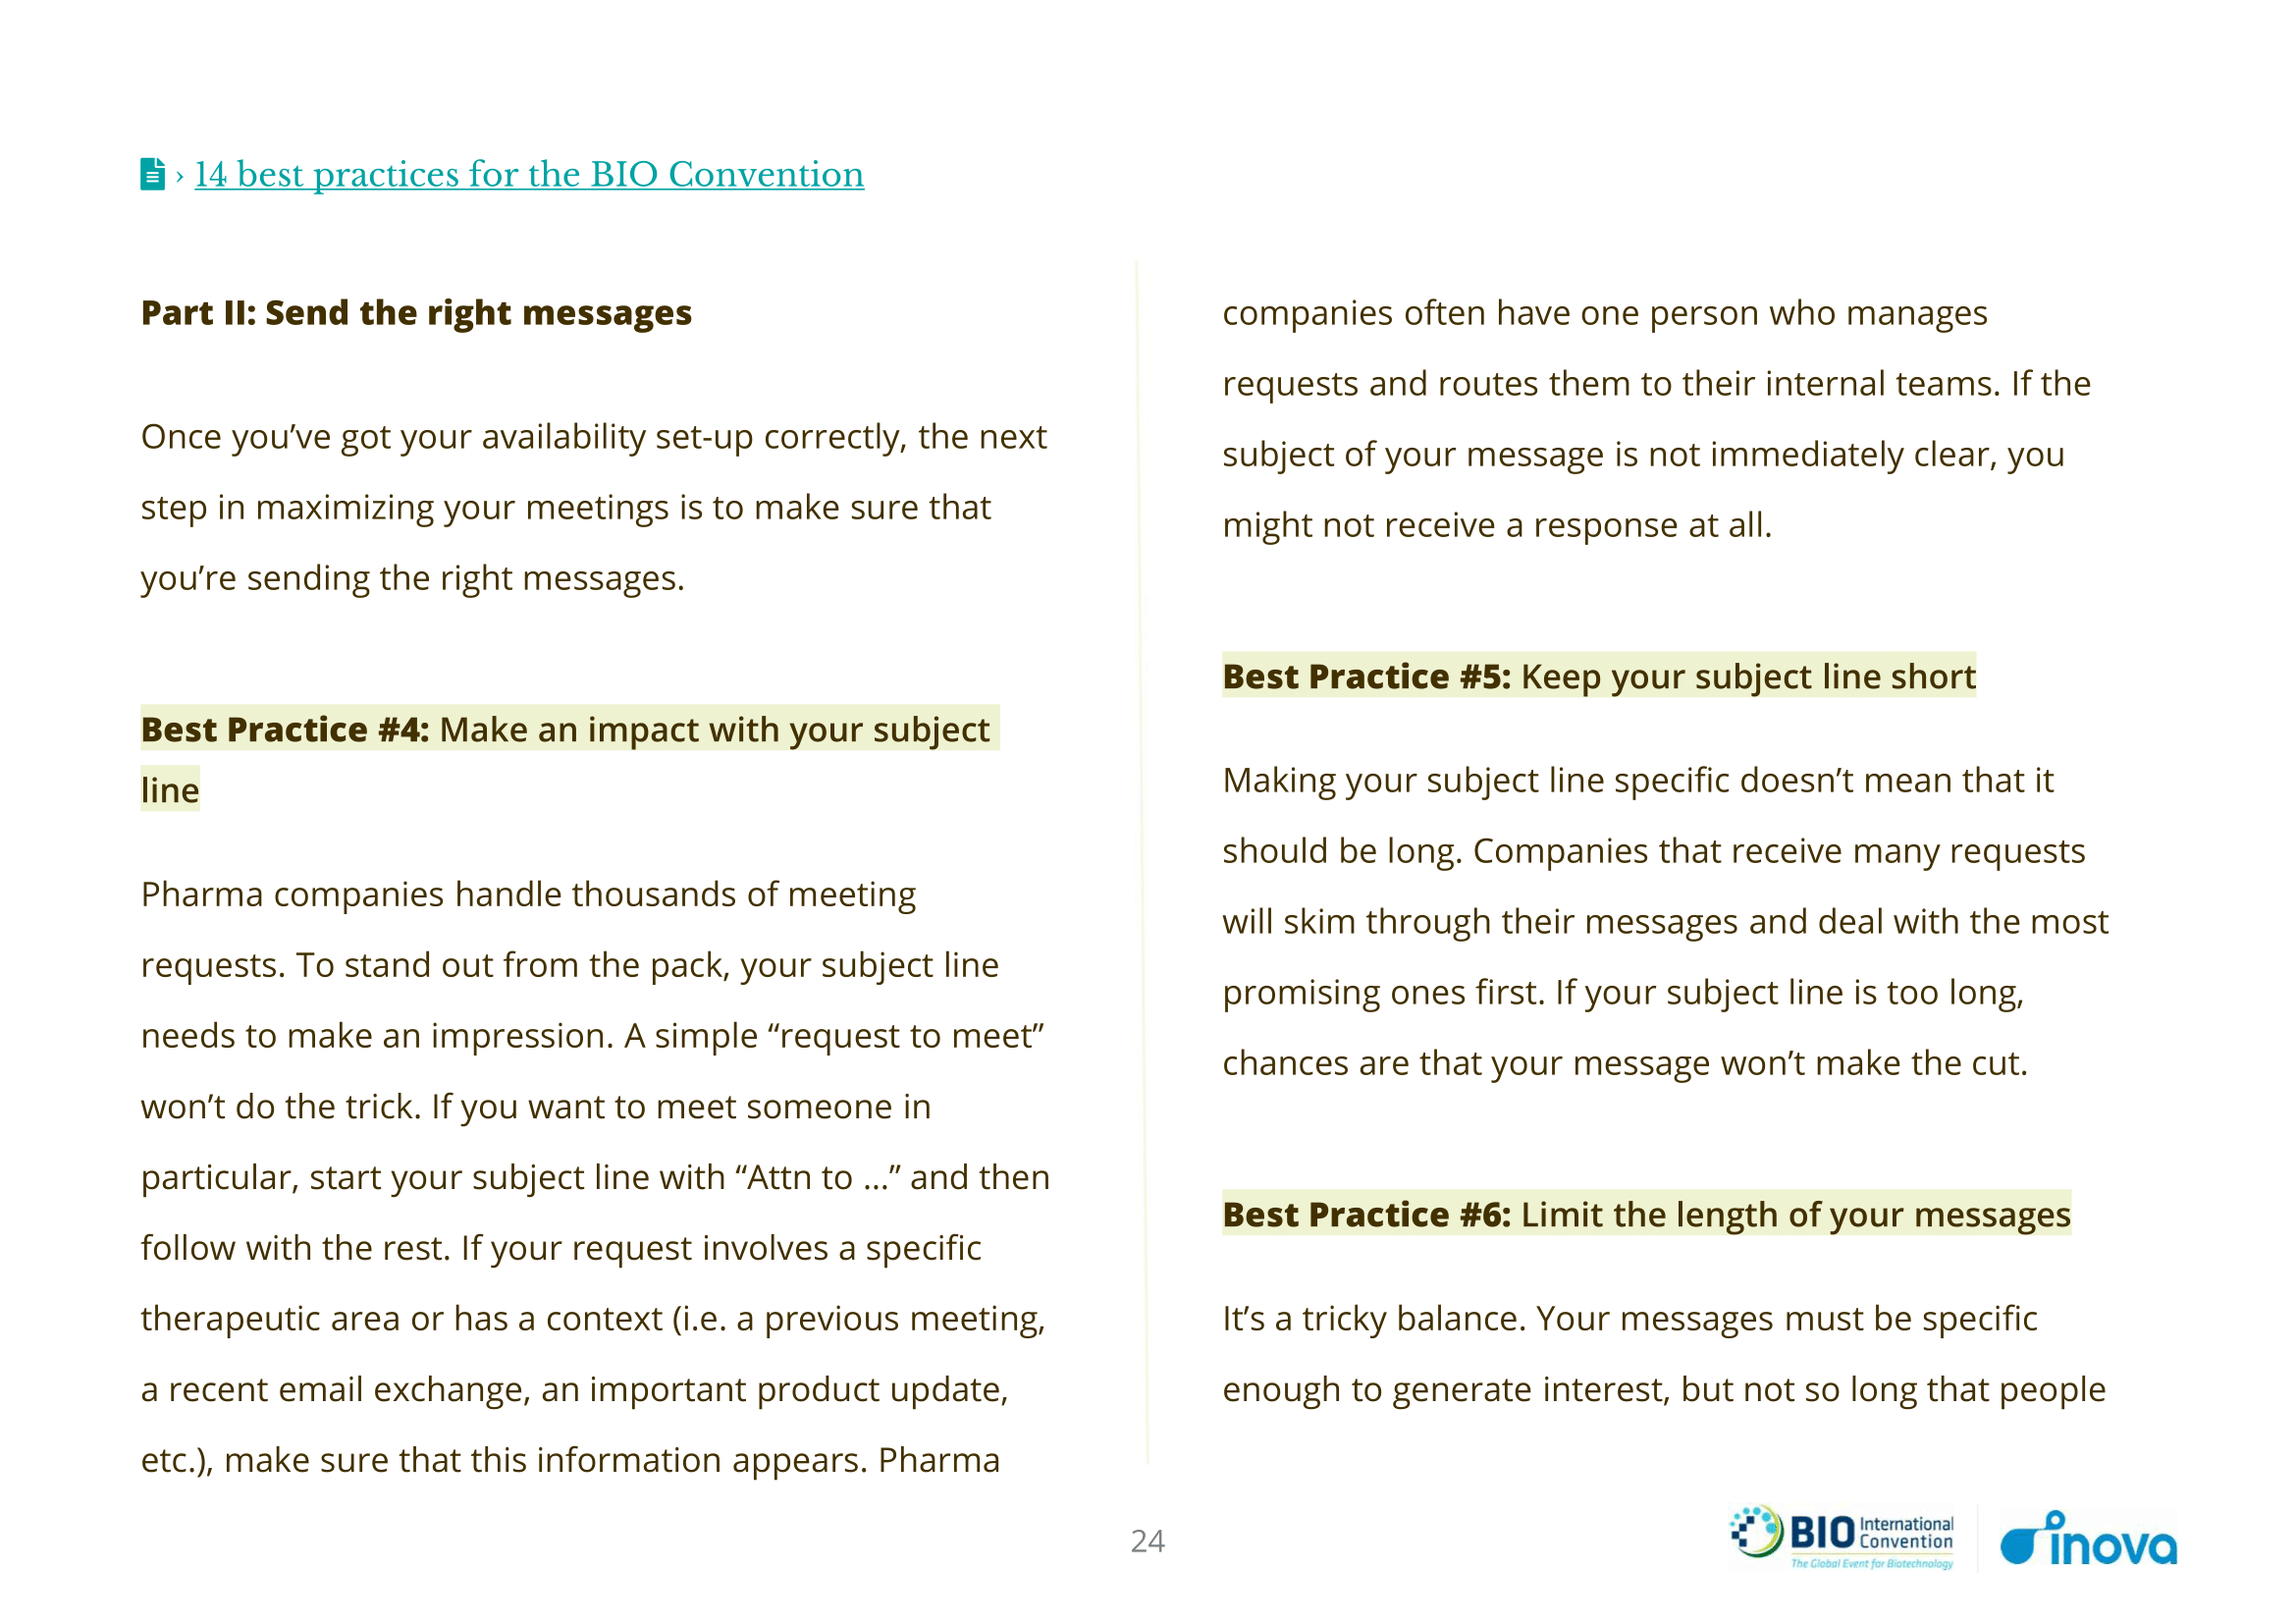 Preview n°2 of 14 Best Practices for Maximizing Your ROI at the BIO International Convention